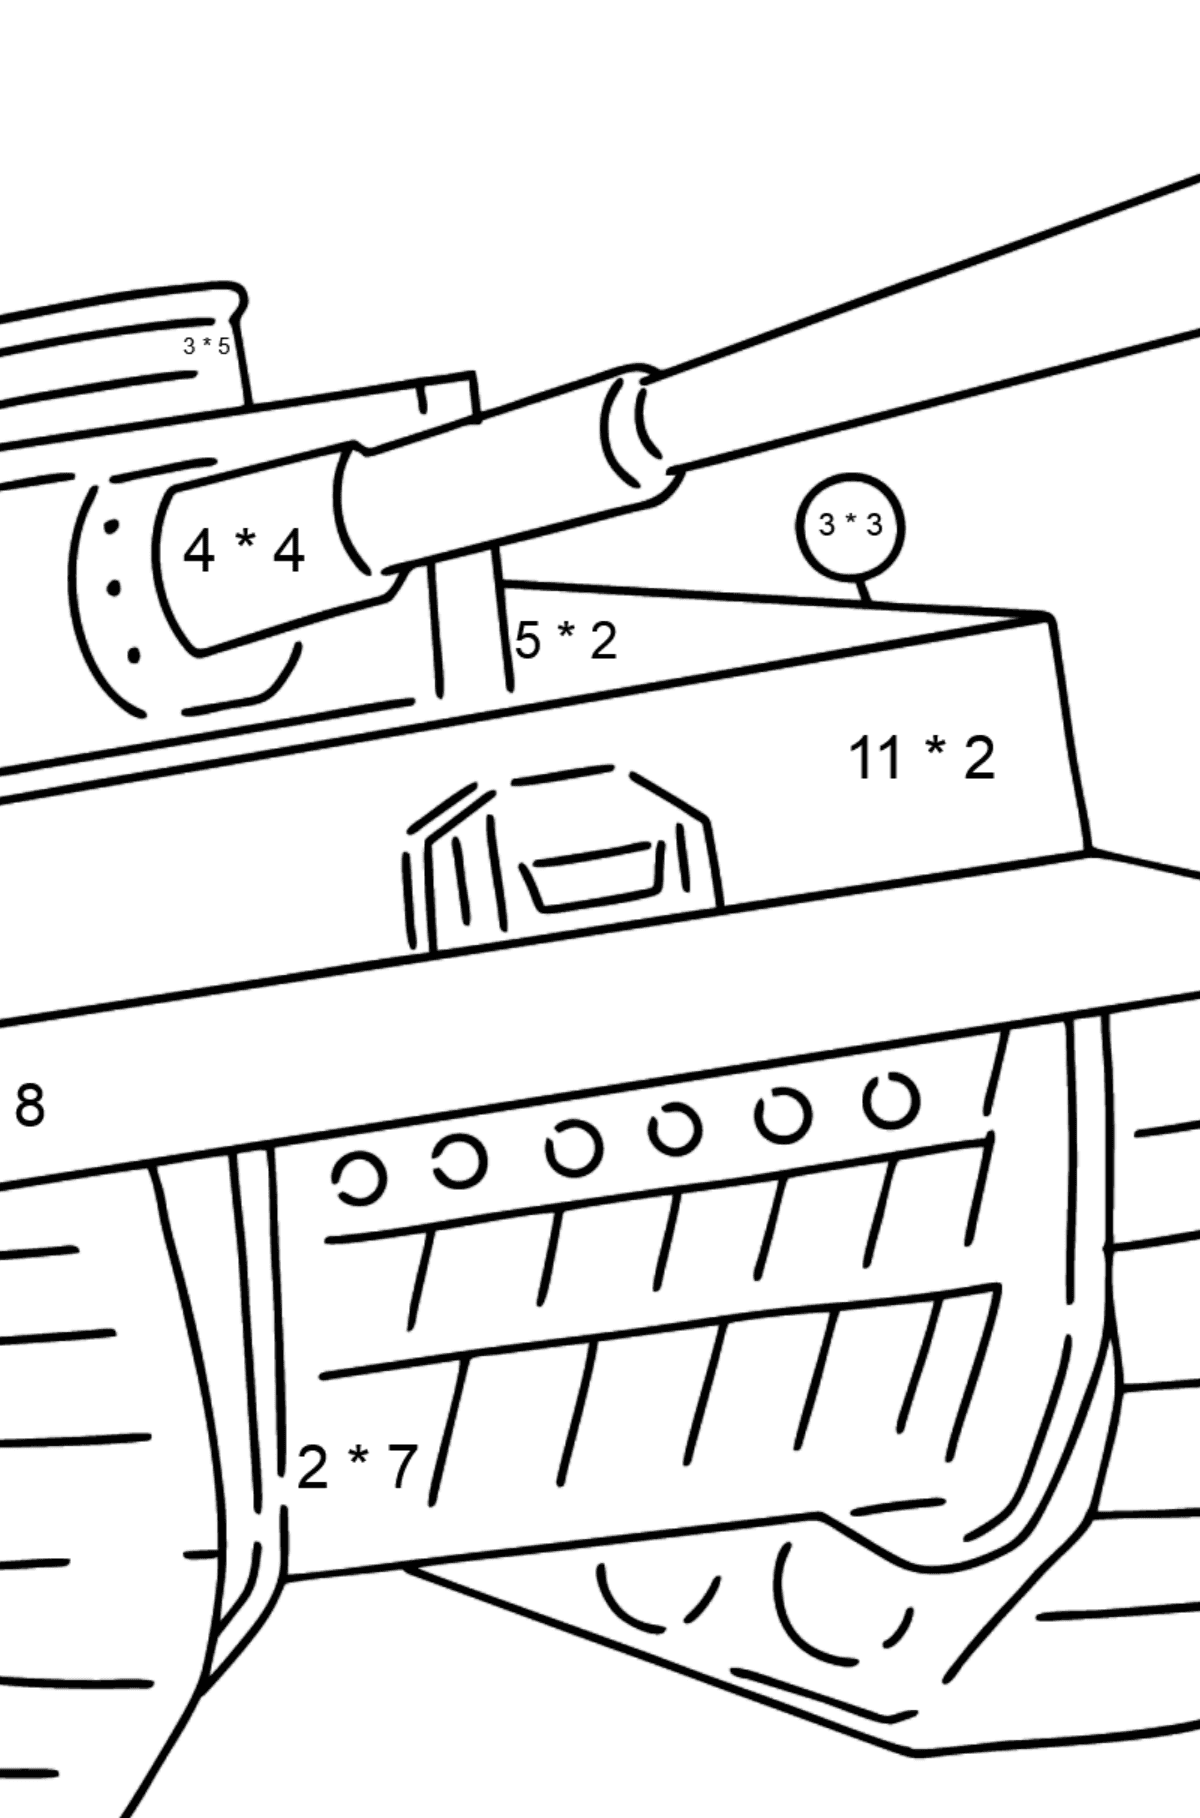 Tank Panther coloring page - Math Coloring - Multiplication for Kids